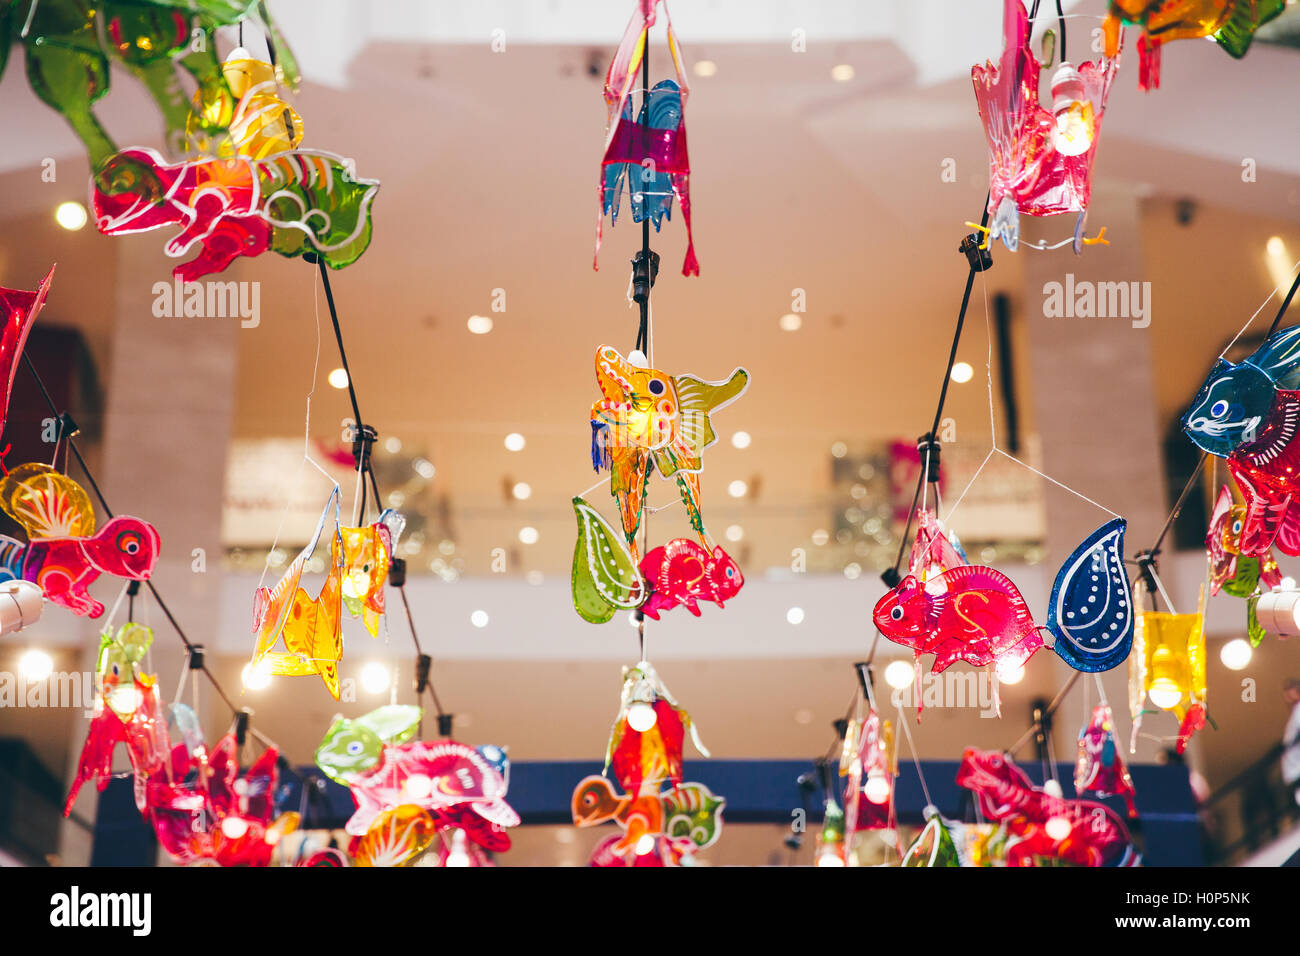 0a4de1b61 Lantern decorations in the mall during Mid-Autumn Festival aka Moon Cake  Festival celebrations in